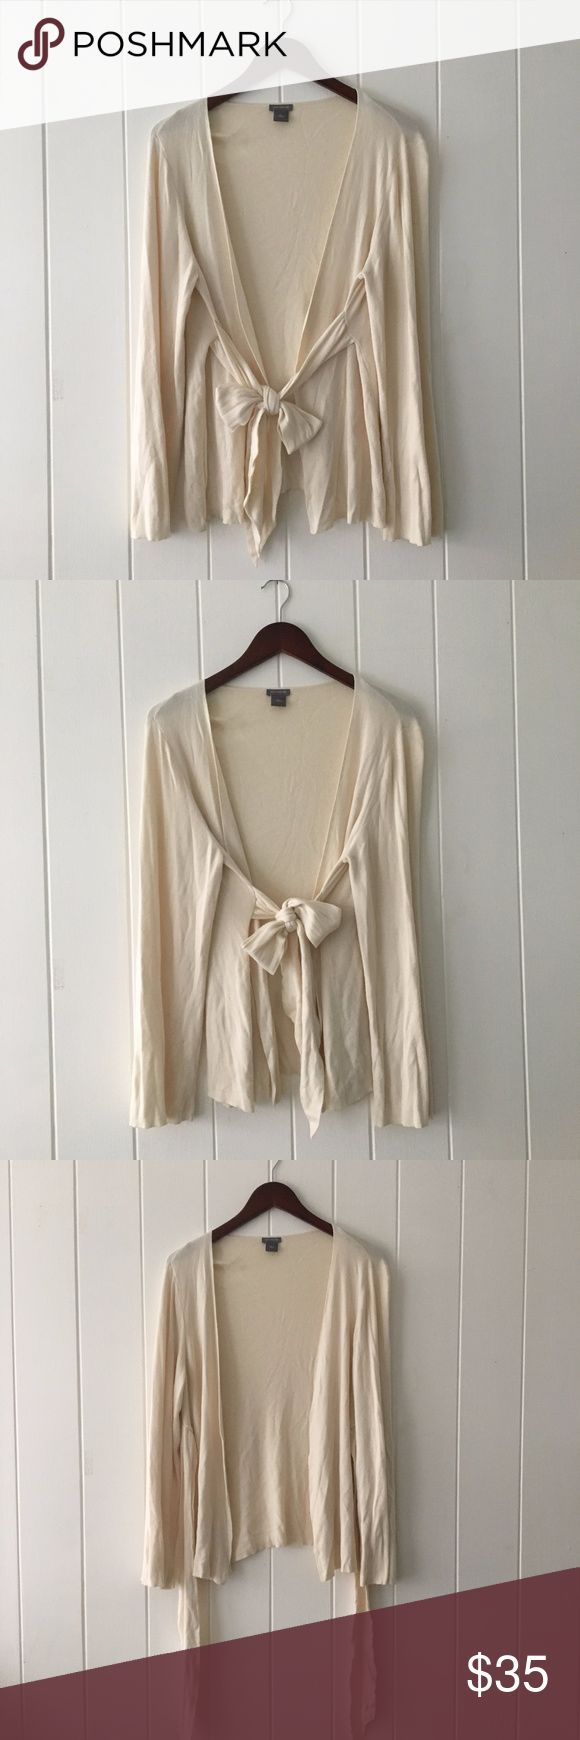 Ann Taylor Cream Bow Tie-Front Cardigan Sweater Super cute and soft cardigan Light cream color Long Sleeve Cardigan Tie Front Bow Small spots shown in last photo Ann Taylor Sweaters Cardigans